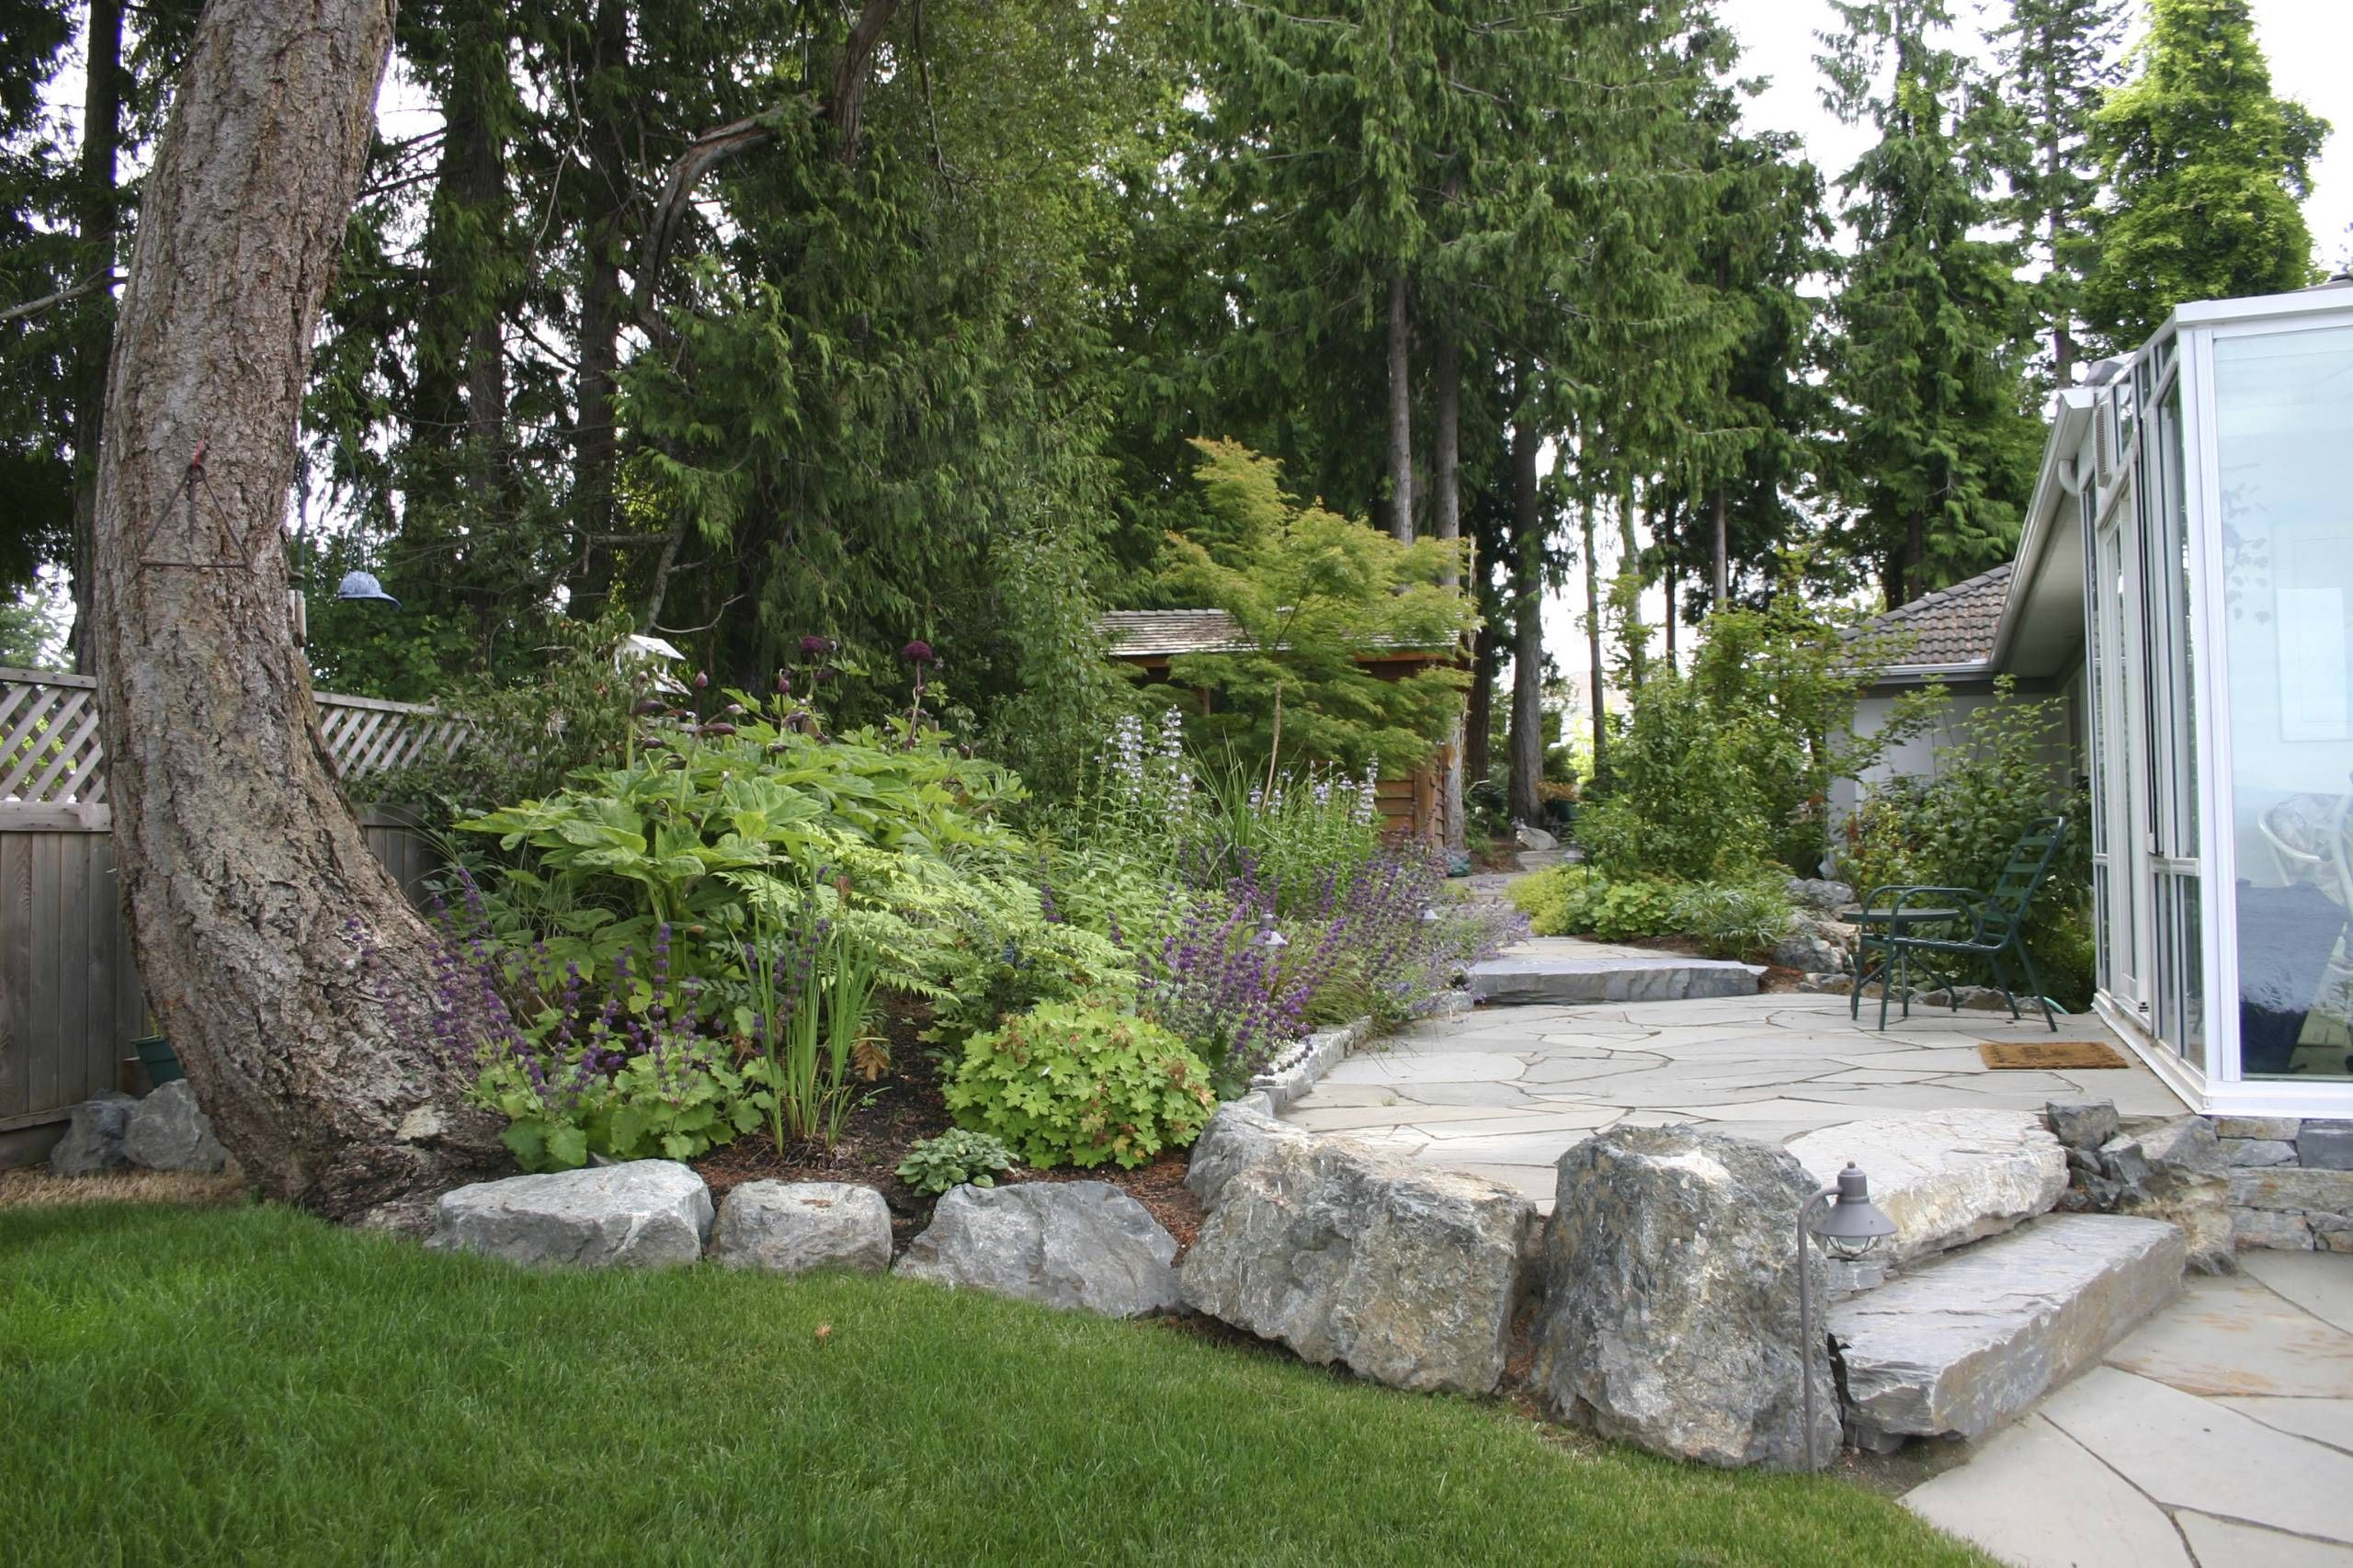 Stone Slab Stairs, Patio, Stone Landscape Edging, Sunroom And Plantings